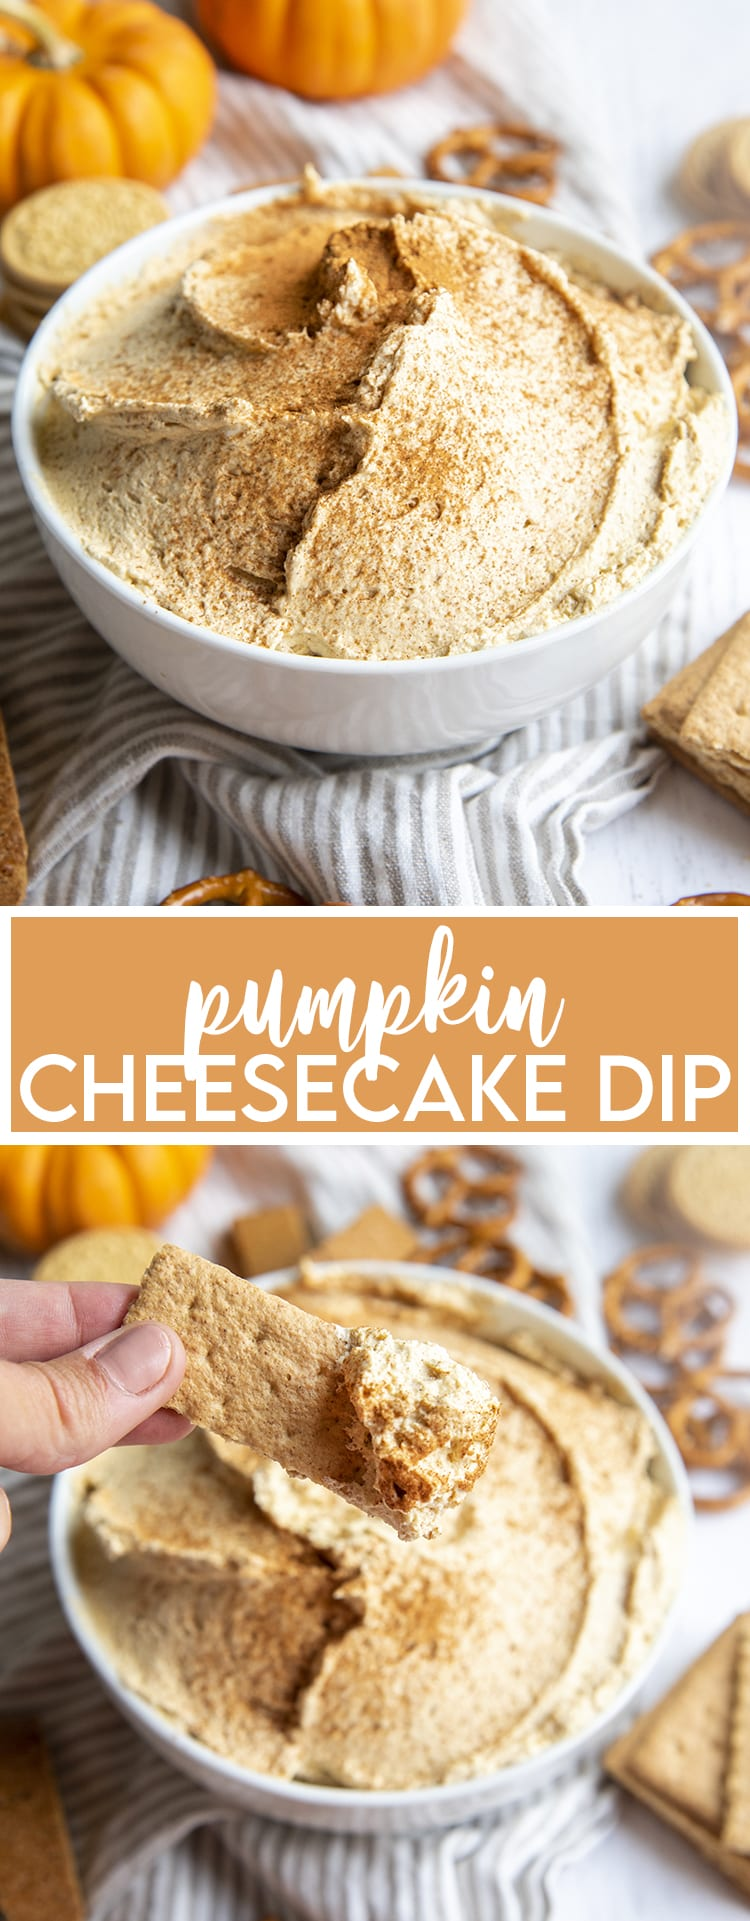 A collage of two photos of pumpkin cheesecake dip with text in the middle for pinterest.